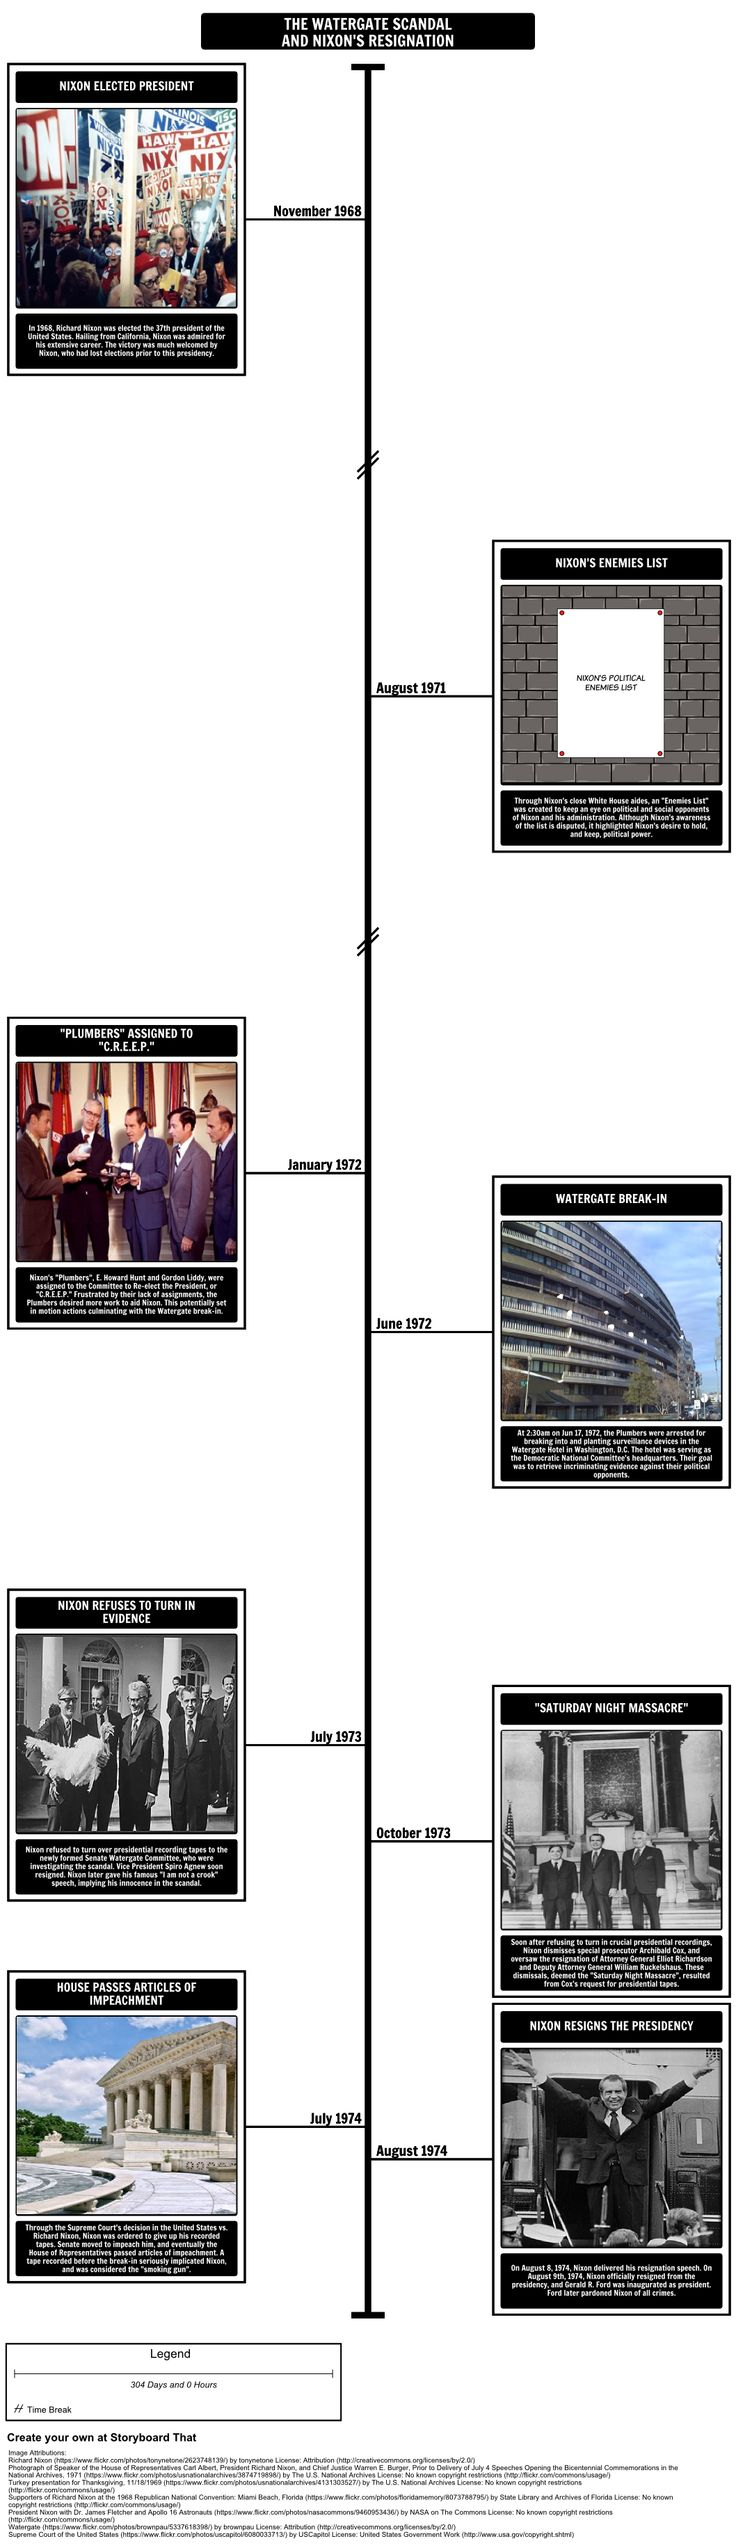 best national history day images white houses have students create a timeline of the watergate scandal students should highlight major events stemming